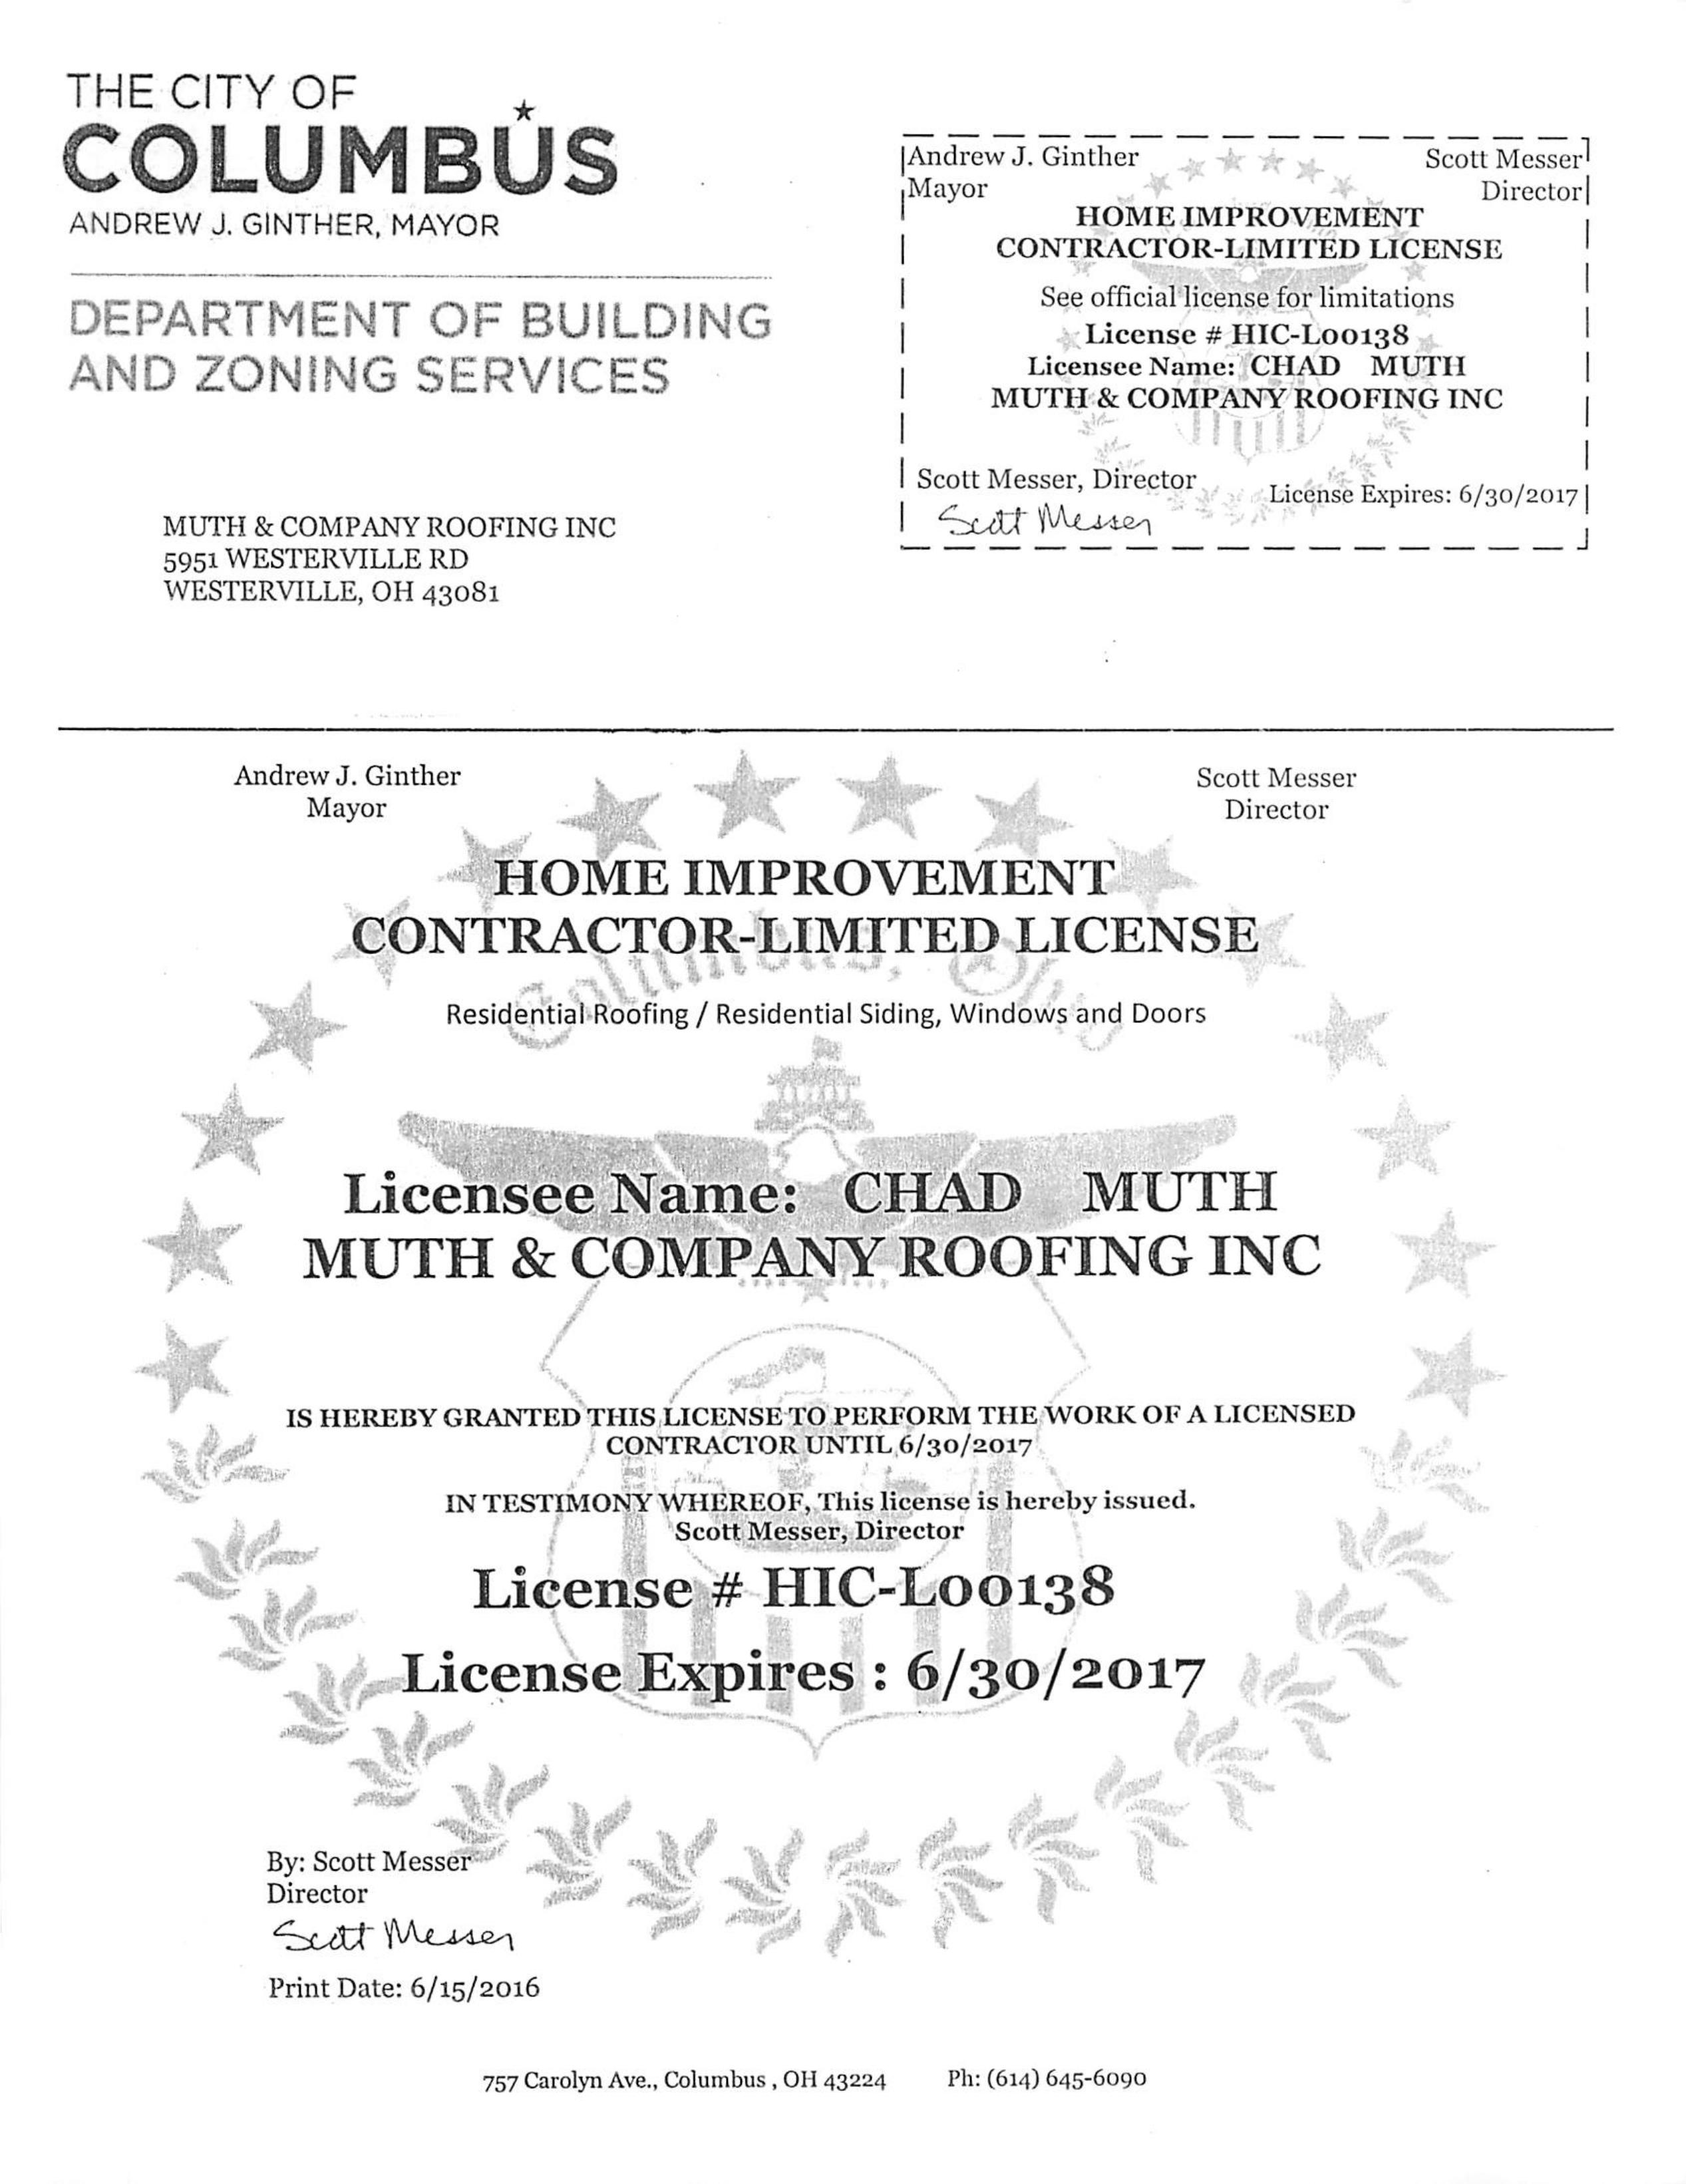 Select The Roofing Contractor Columbus Knows Is Fully Licensed And Insured  To Work On Your Home U2013 Muth U0026 Company Roofing!